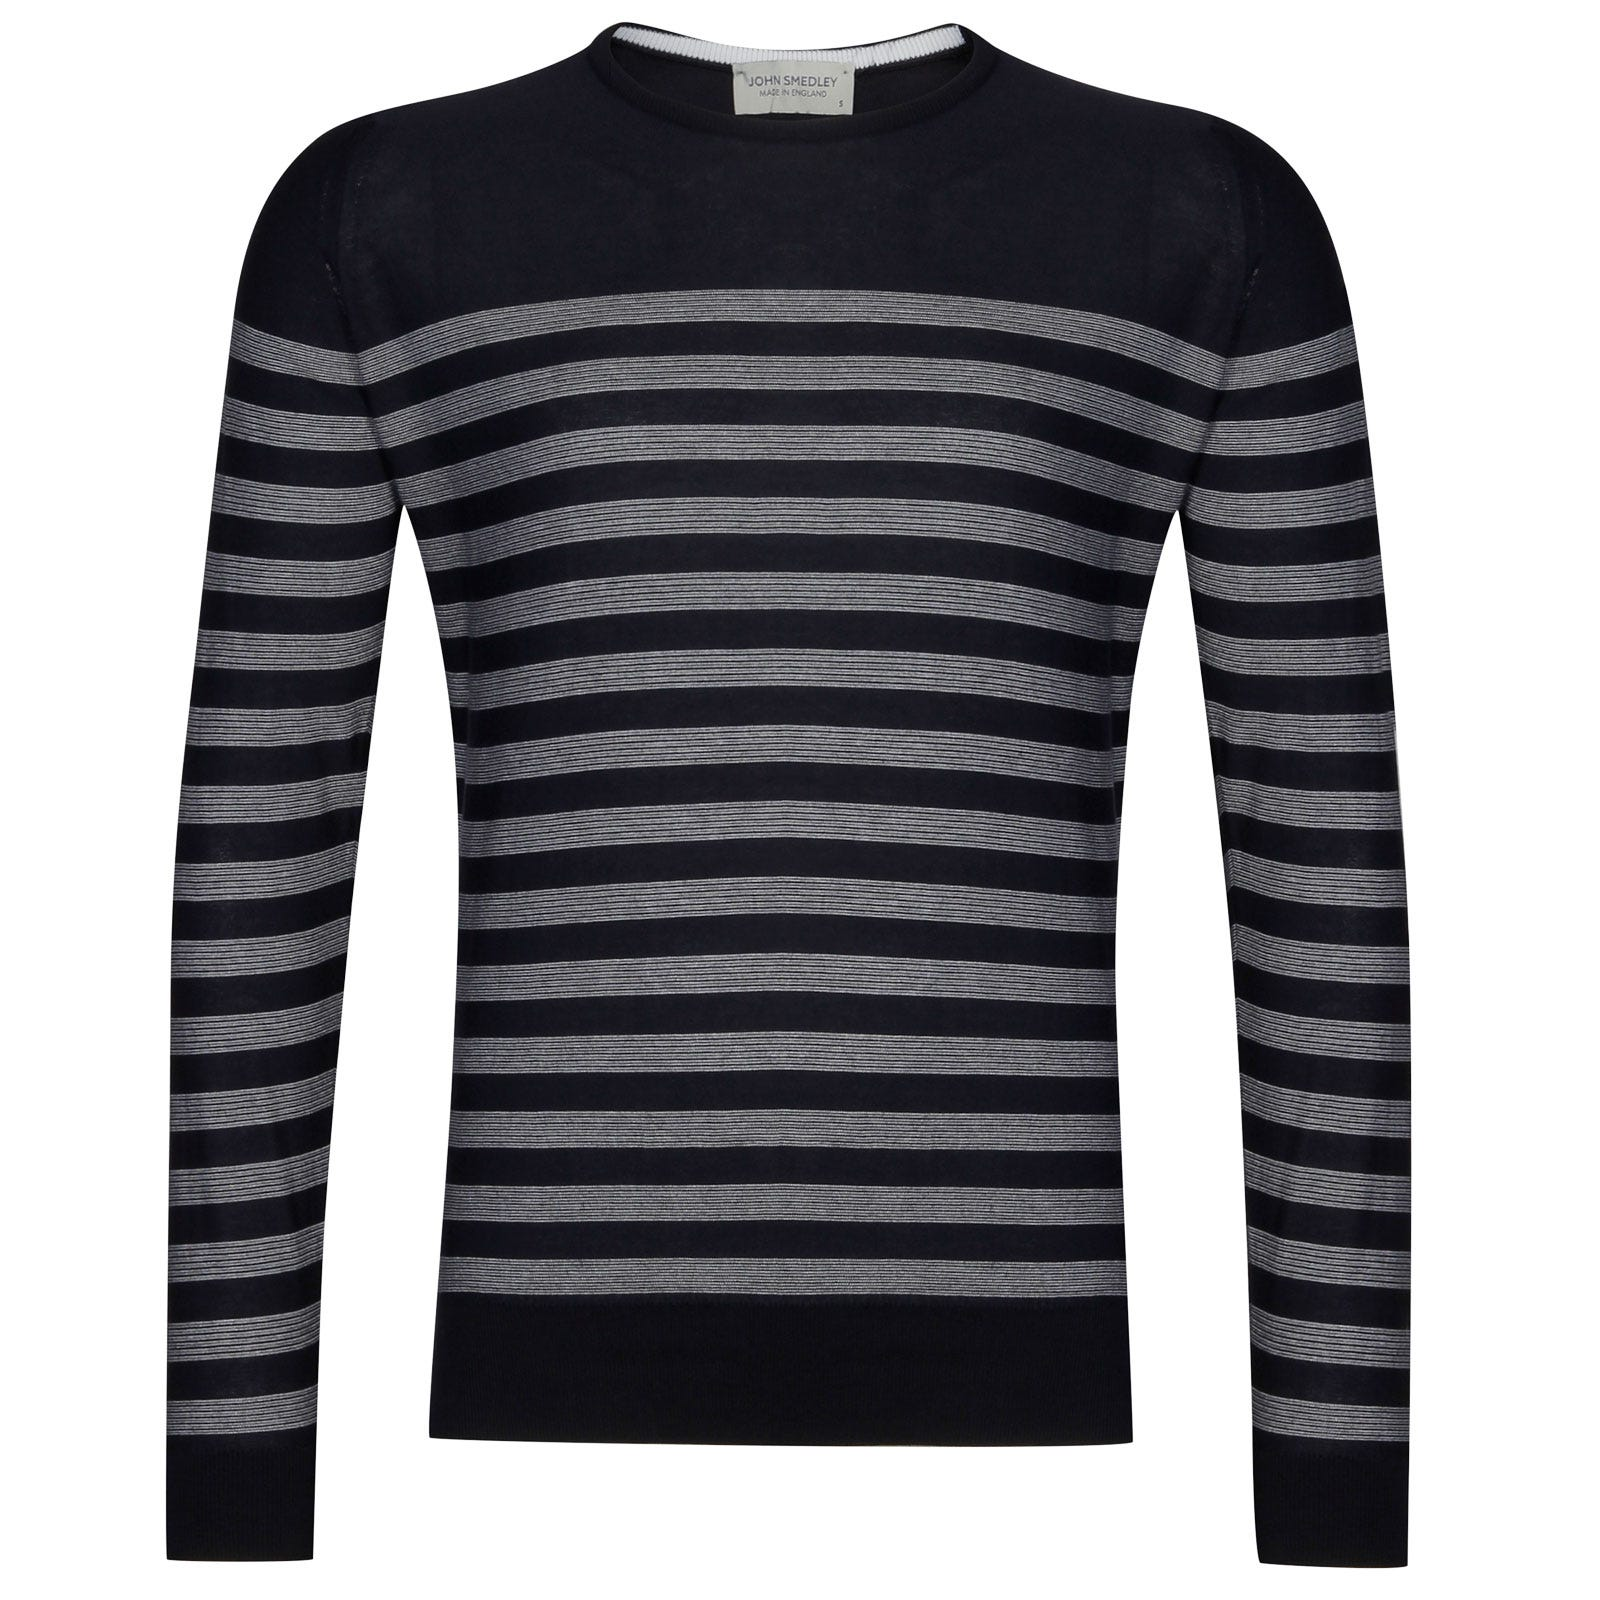 John Smedley rubra Sea Island Cotton Sweater in Navy/White-M